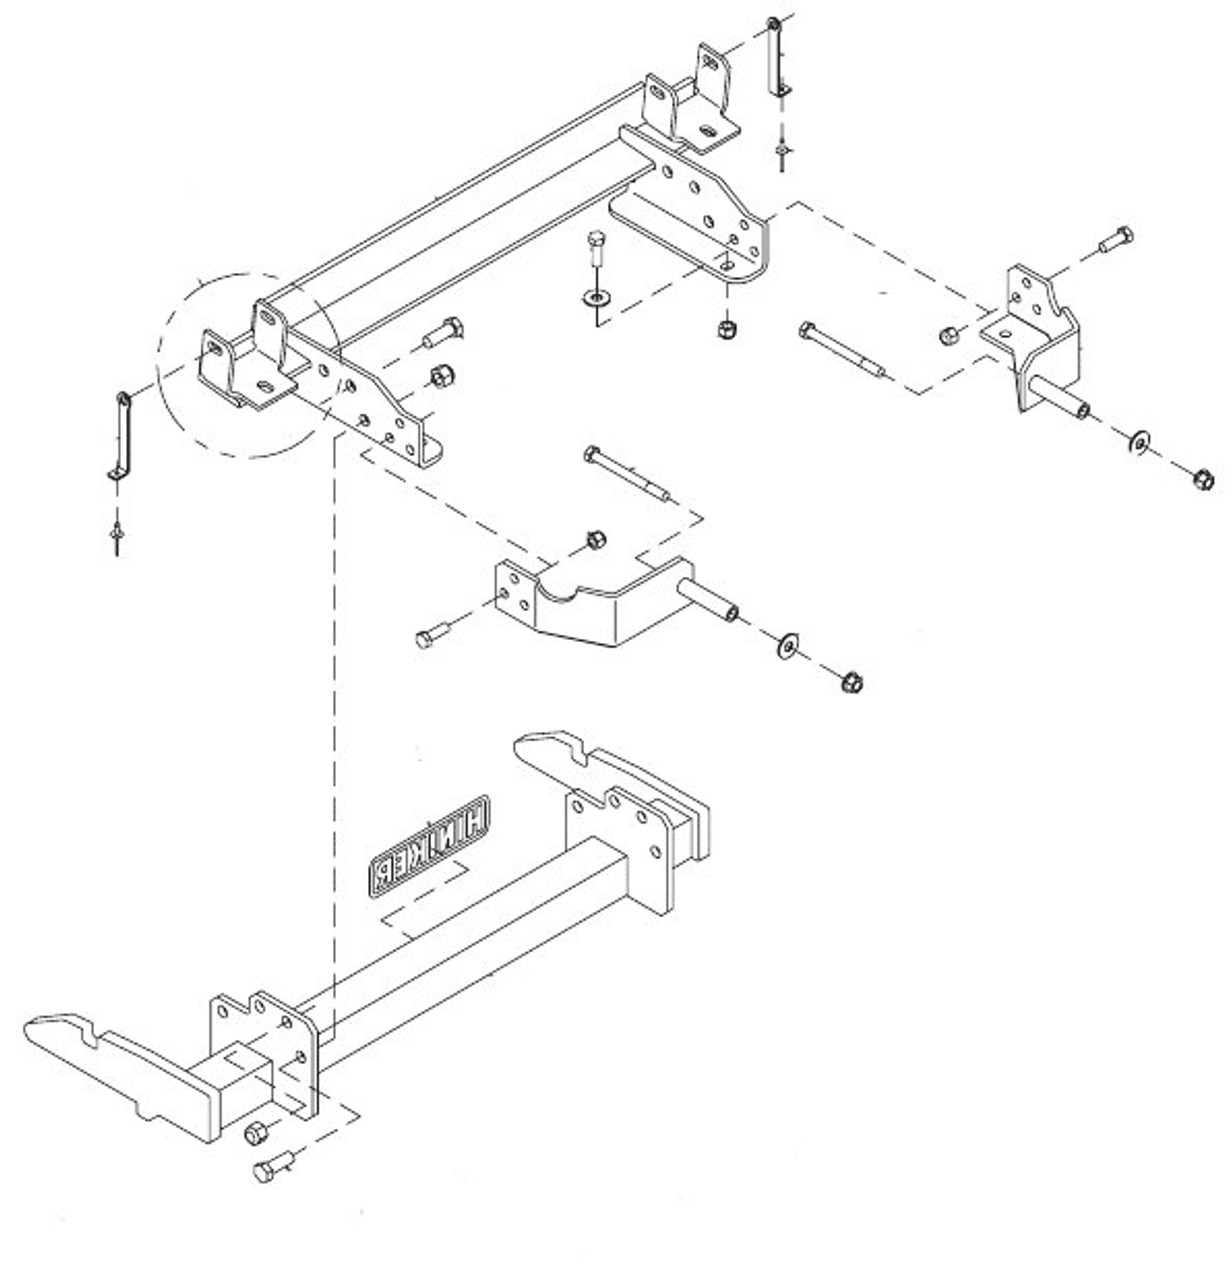 hn25012815 hiniker quick hitch plow mount kit for chevy gmc 2500 3500 croft trailer supply [ 1232 x 1280 Pixel ]